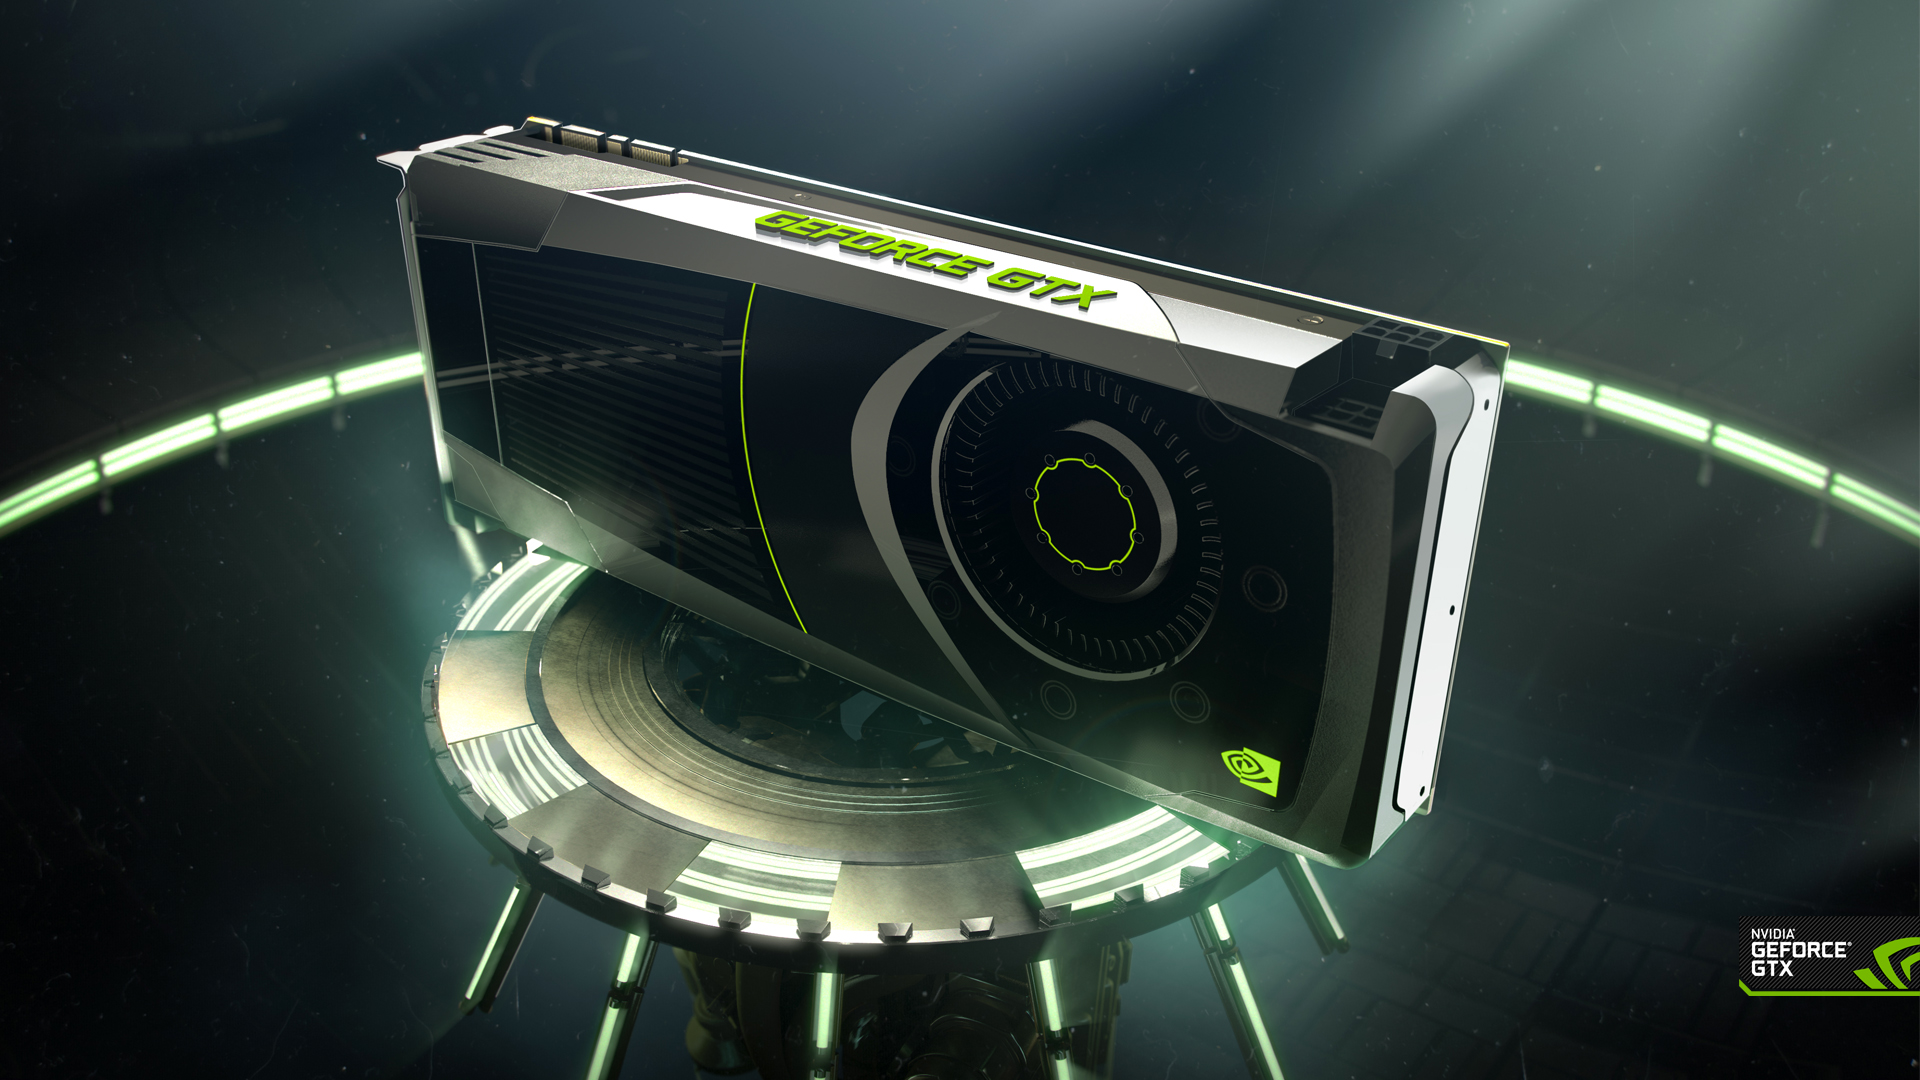 Nvidia Geforce Gtx 680 Wallpaper Now Available Geforce